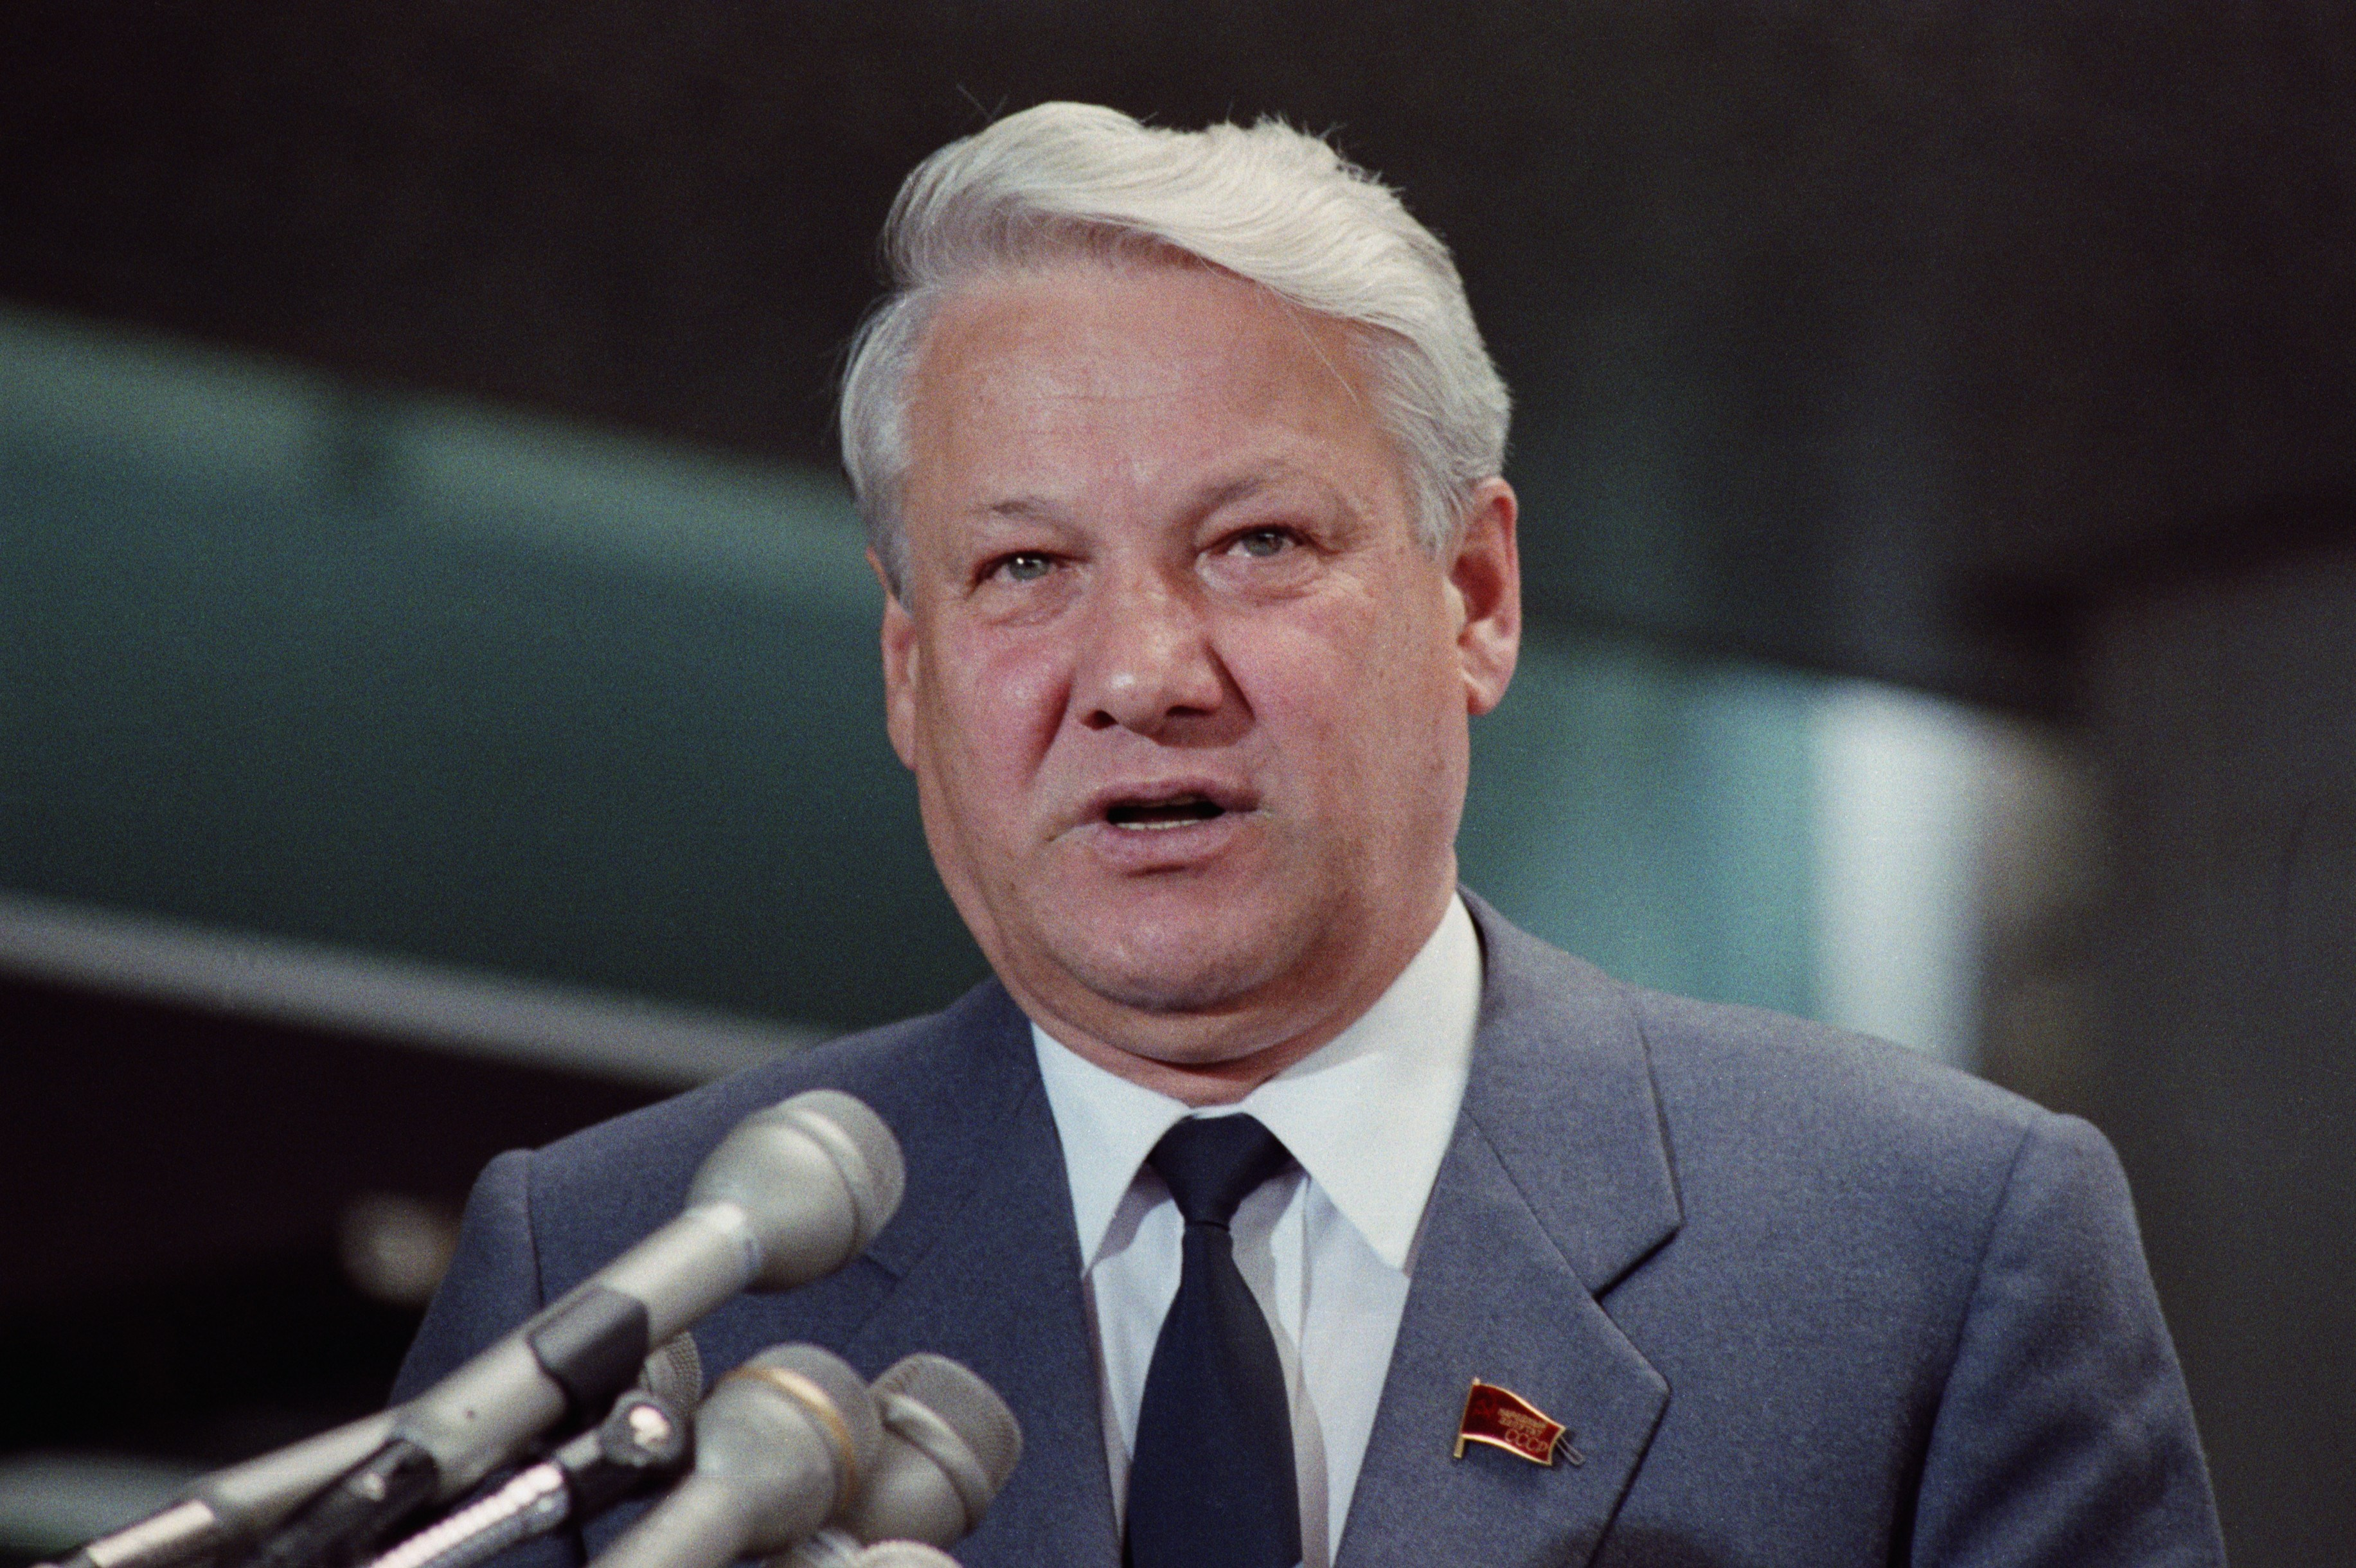 an introduction to the life of boris yeltsin 7 alleged alcoholism 8 life after resignation 9 death  boris yeltsin's legacy  will be forever linked to the bold actions that he took in late.